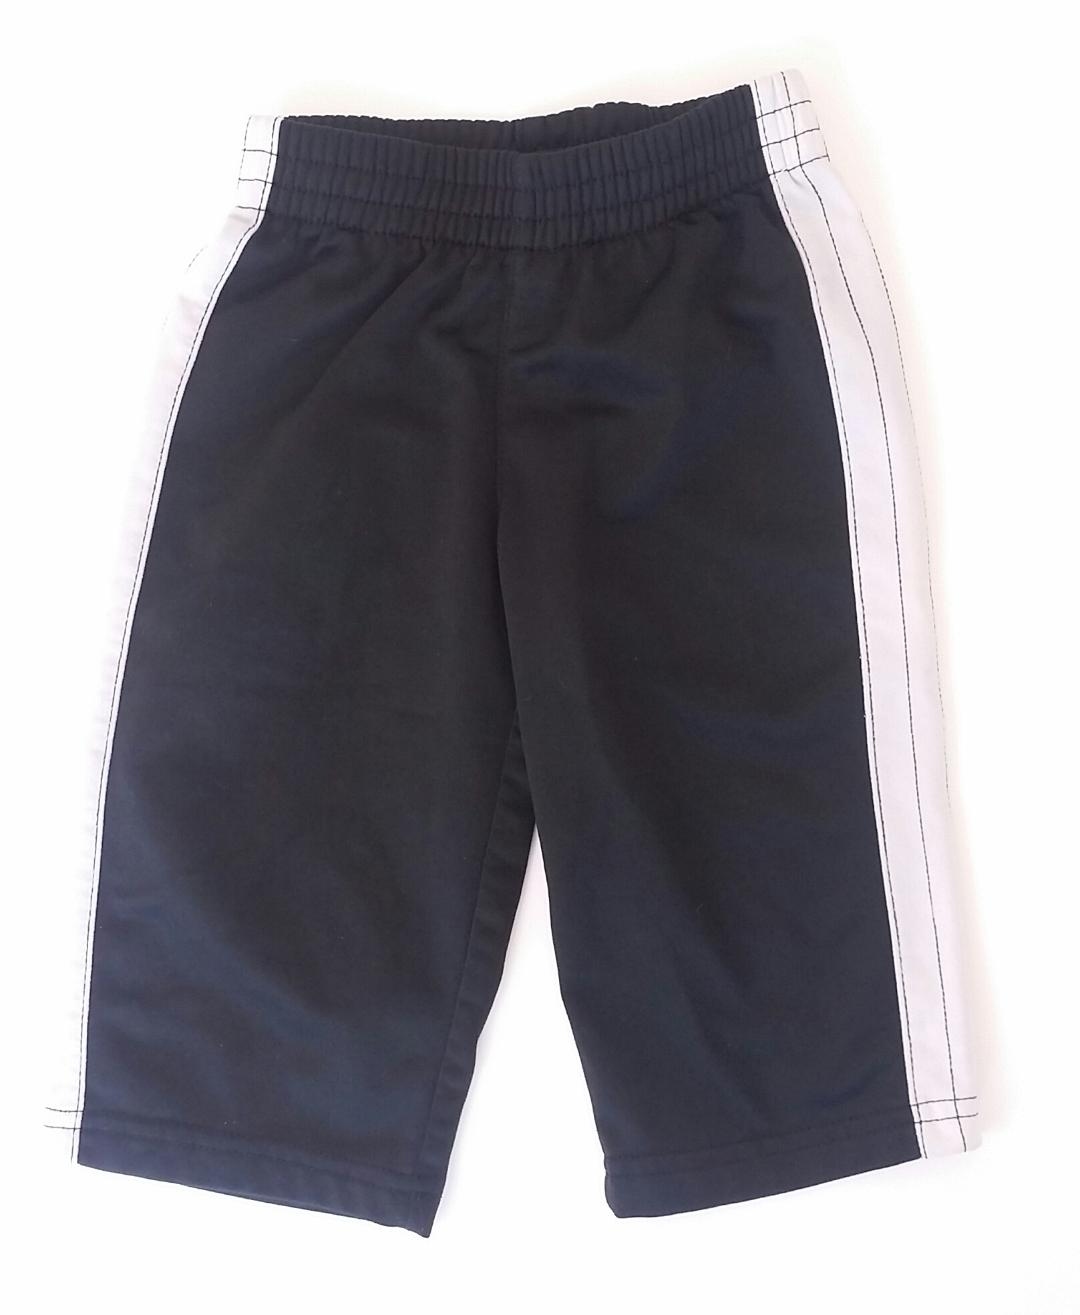 Circo-12-18-MONTHS-Pull-on-Pants_2087009A.jpg